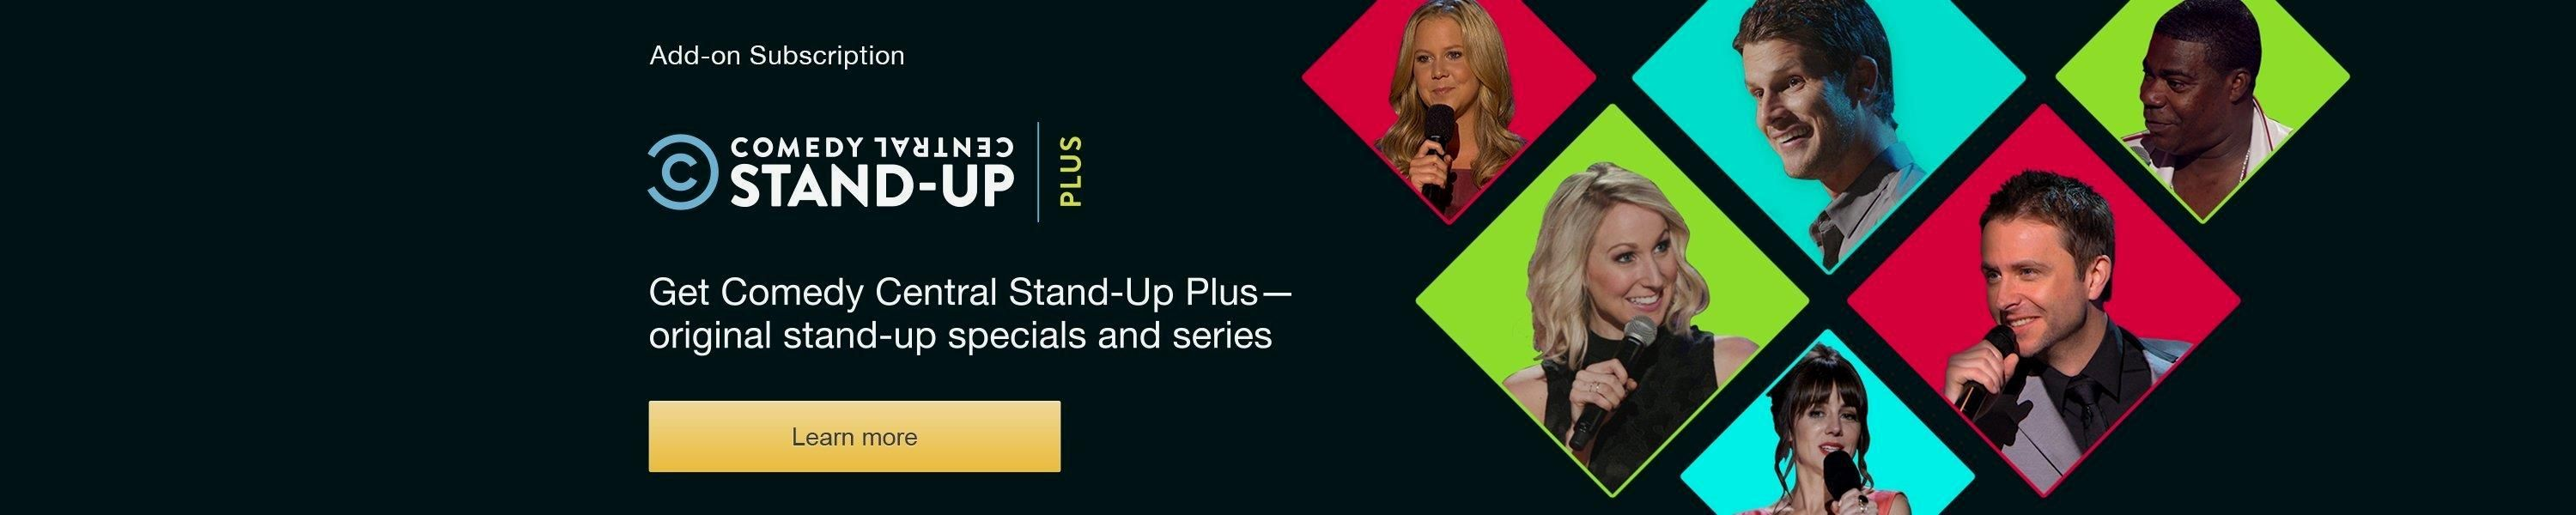 Comedy central stand up PLUS >>>> Free Trial http//amzn